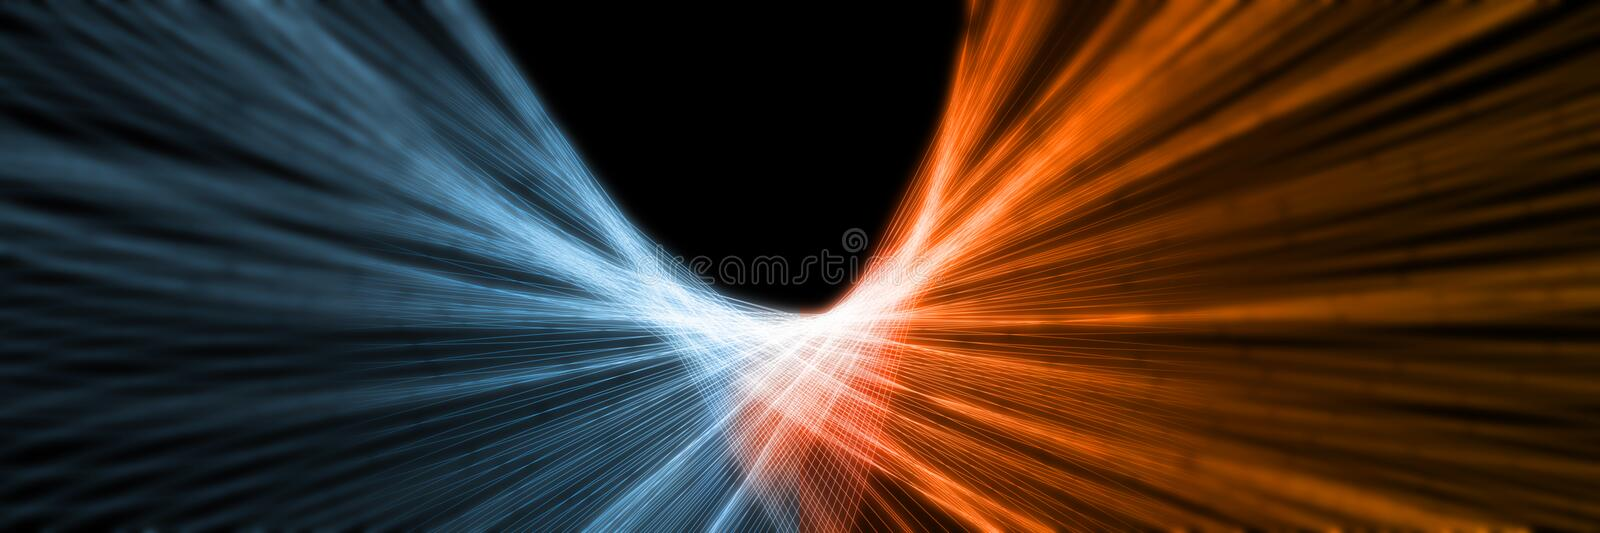 3D Rendering of abstract Fire and Ice lines element against vs each other background. Heat and Cold concept stock illustration